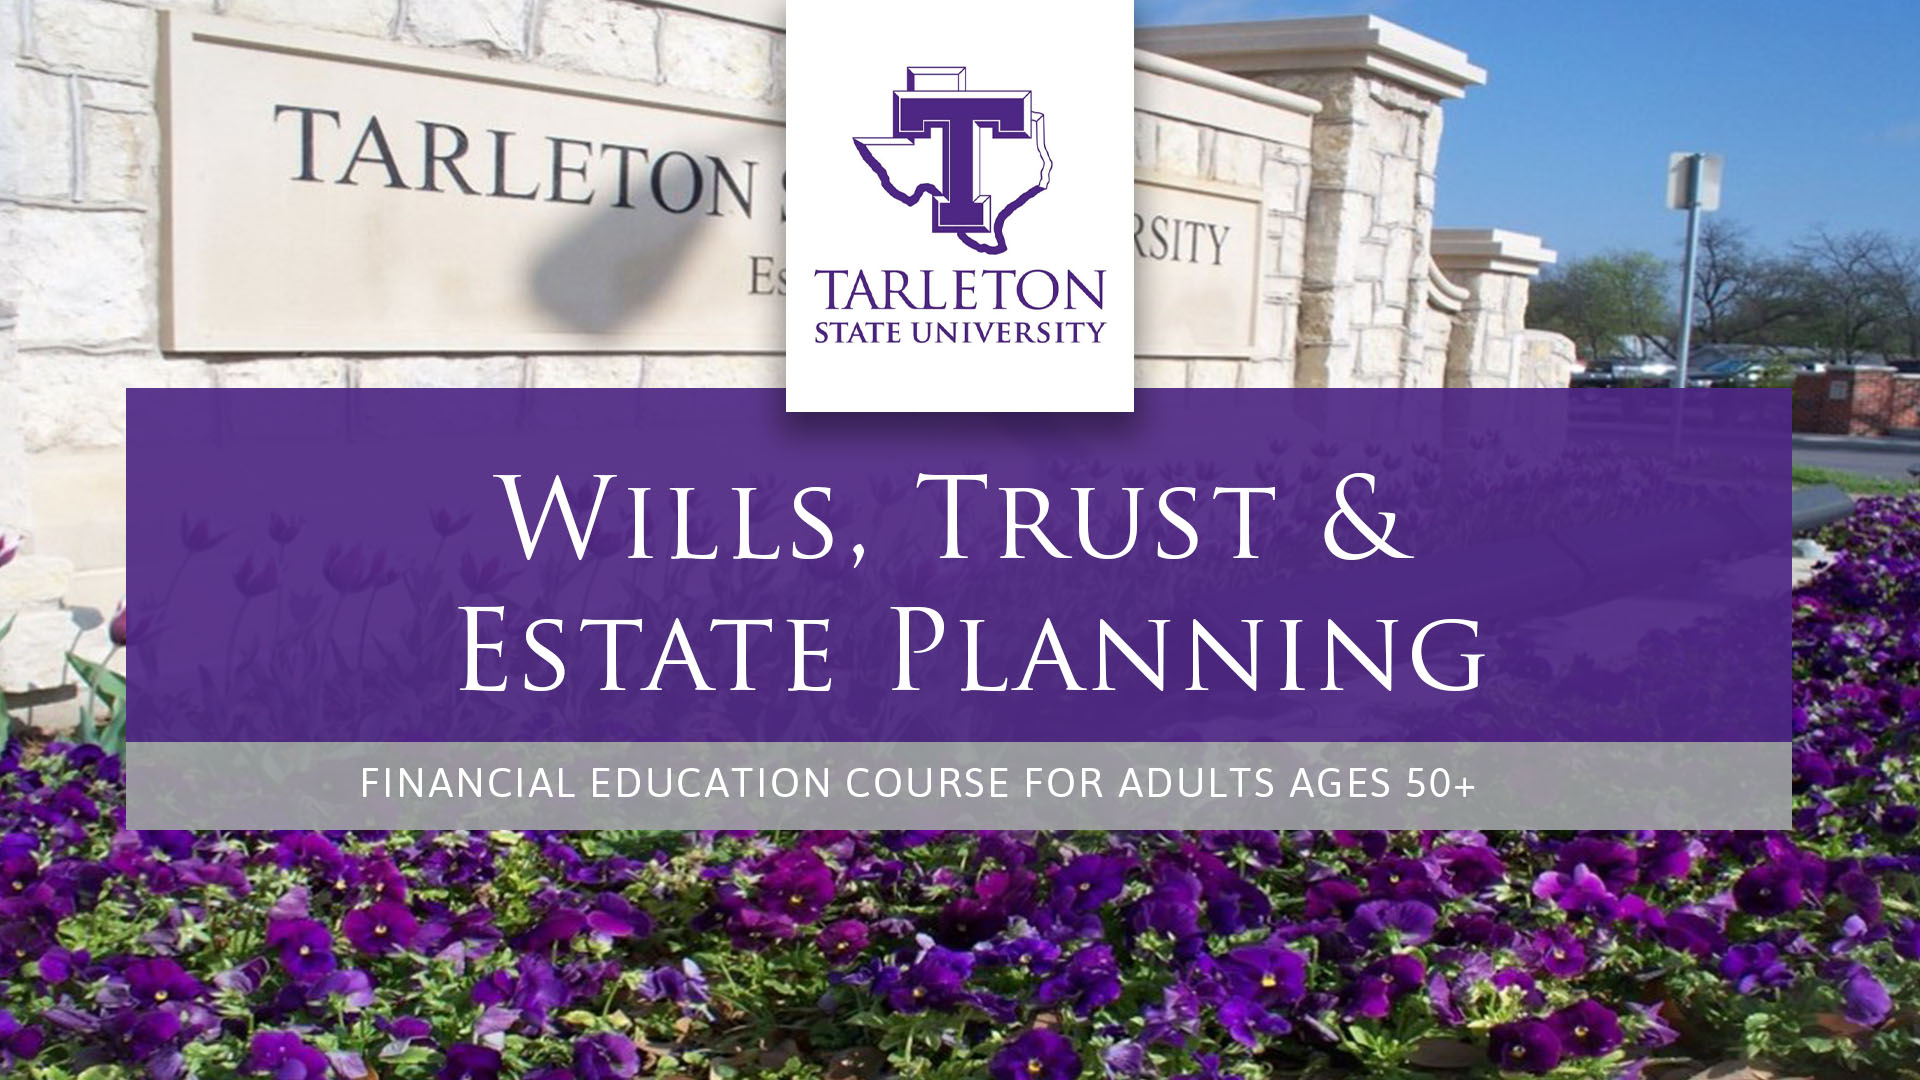 Strittmatter Wealth Management Group Financial Education Courses Tarleton State University Wills, Trusts, & Estate Planning Fort Worth, Texas